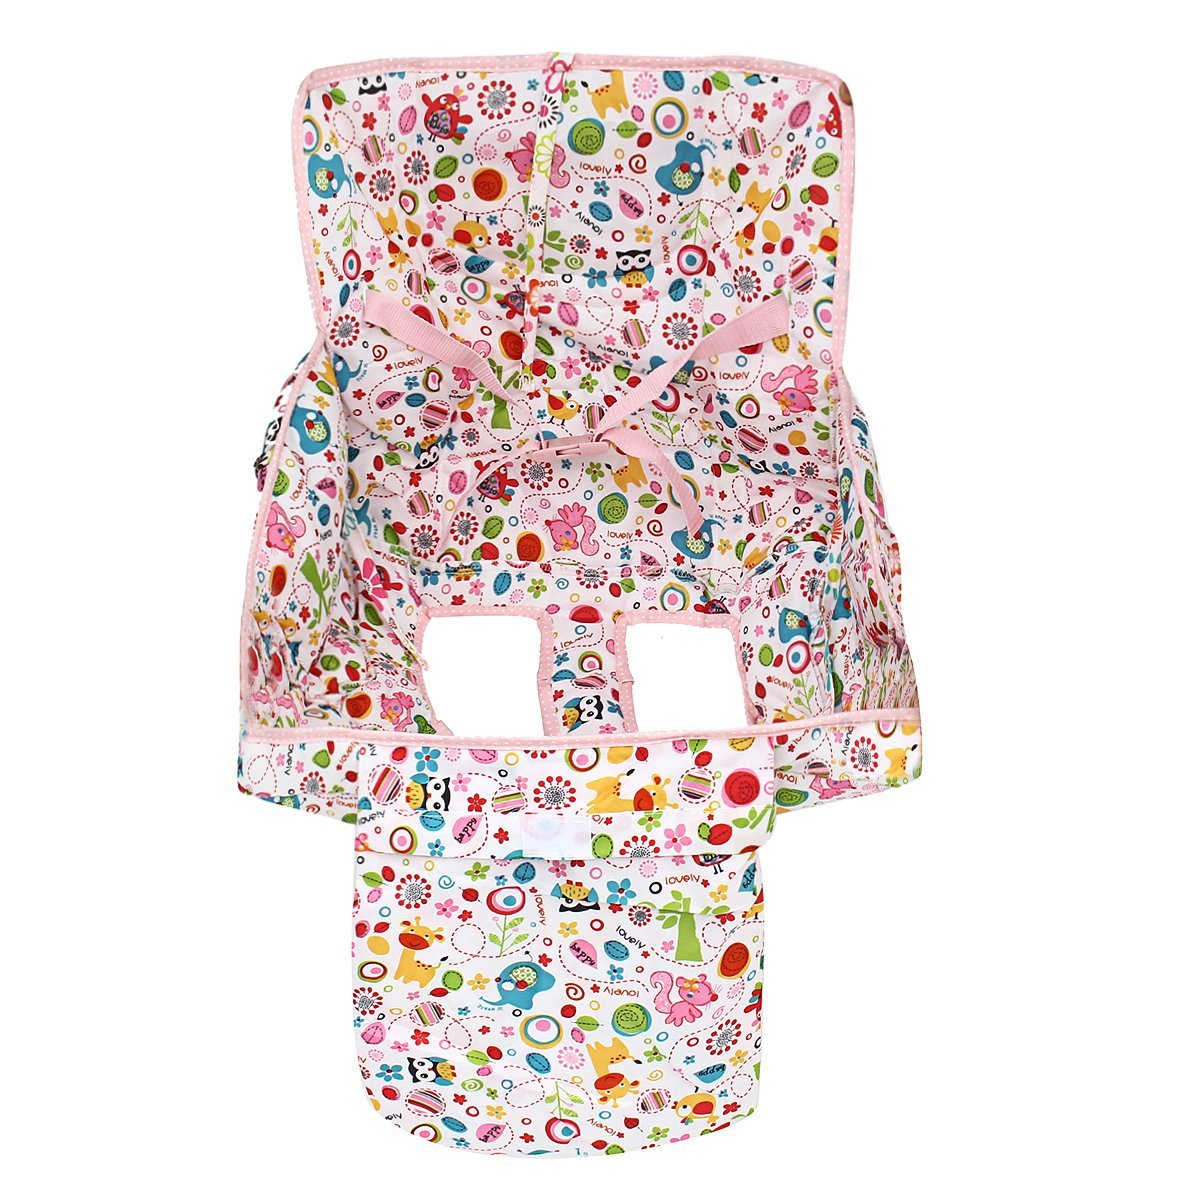 BabyCartSAFE™ Baby Shopping Cart Seat Germs Protector Cover - Shopcytee